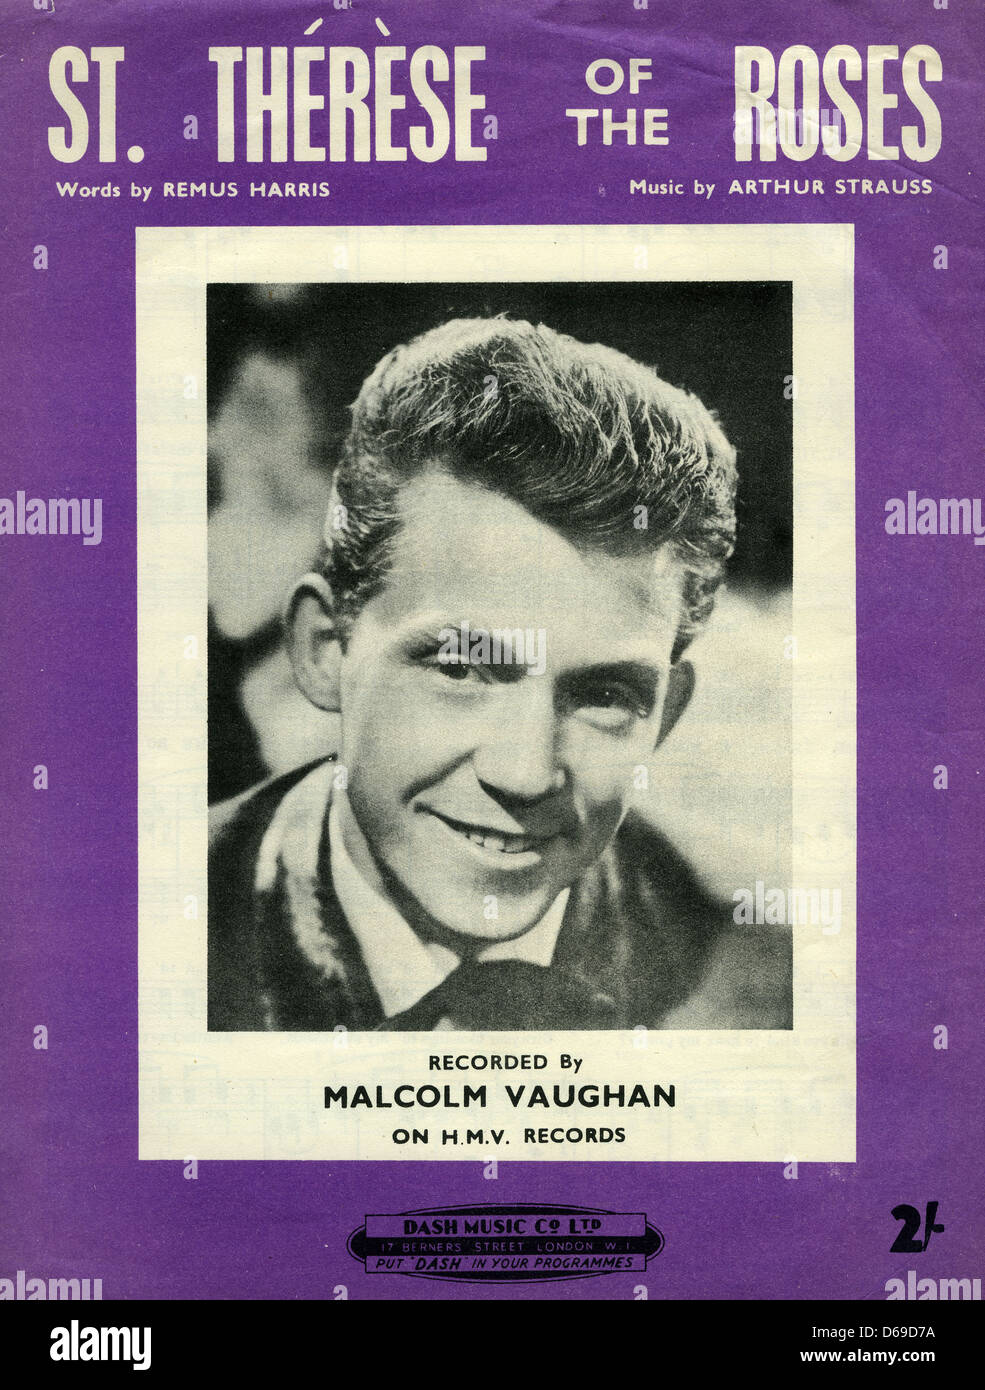 MALCOLM VAUGHAN (1929-2010) Welsh singer whose recording of St.Therese of the Roses provoked much controversy in - Stock Image